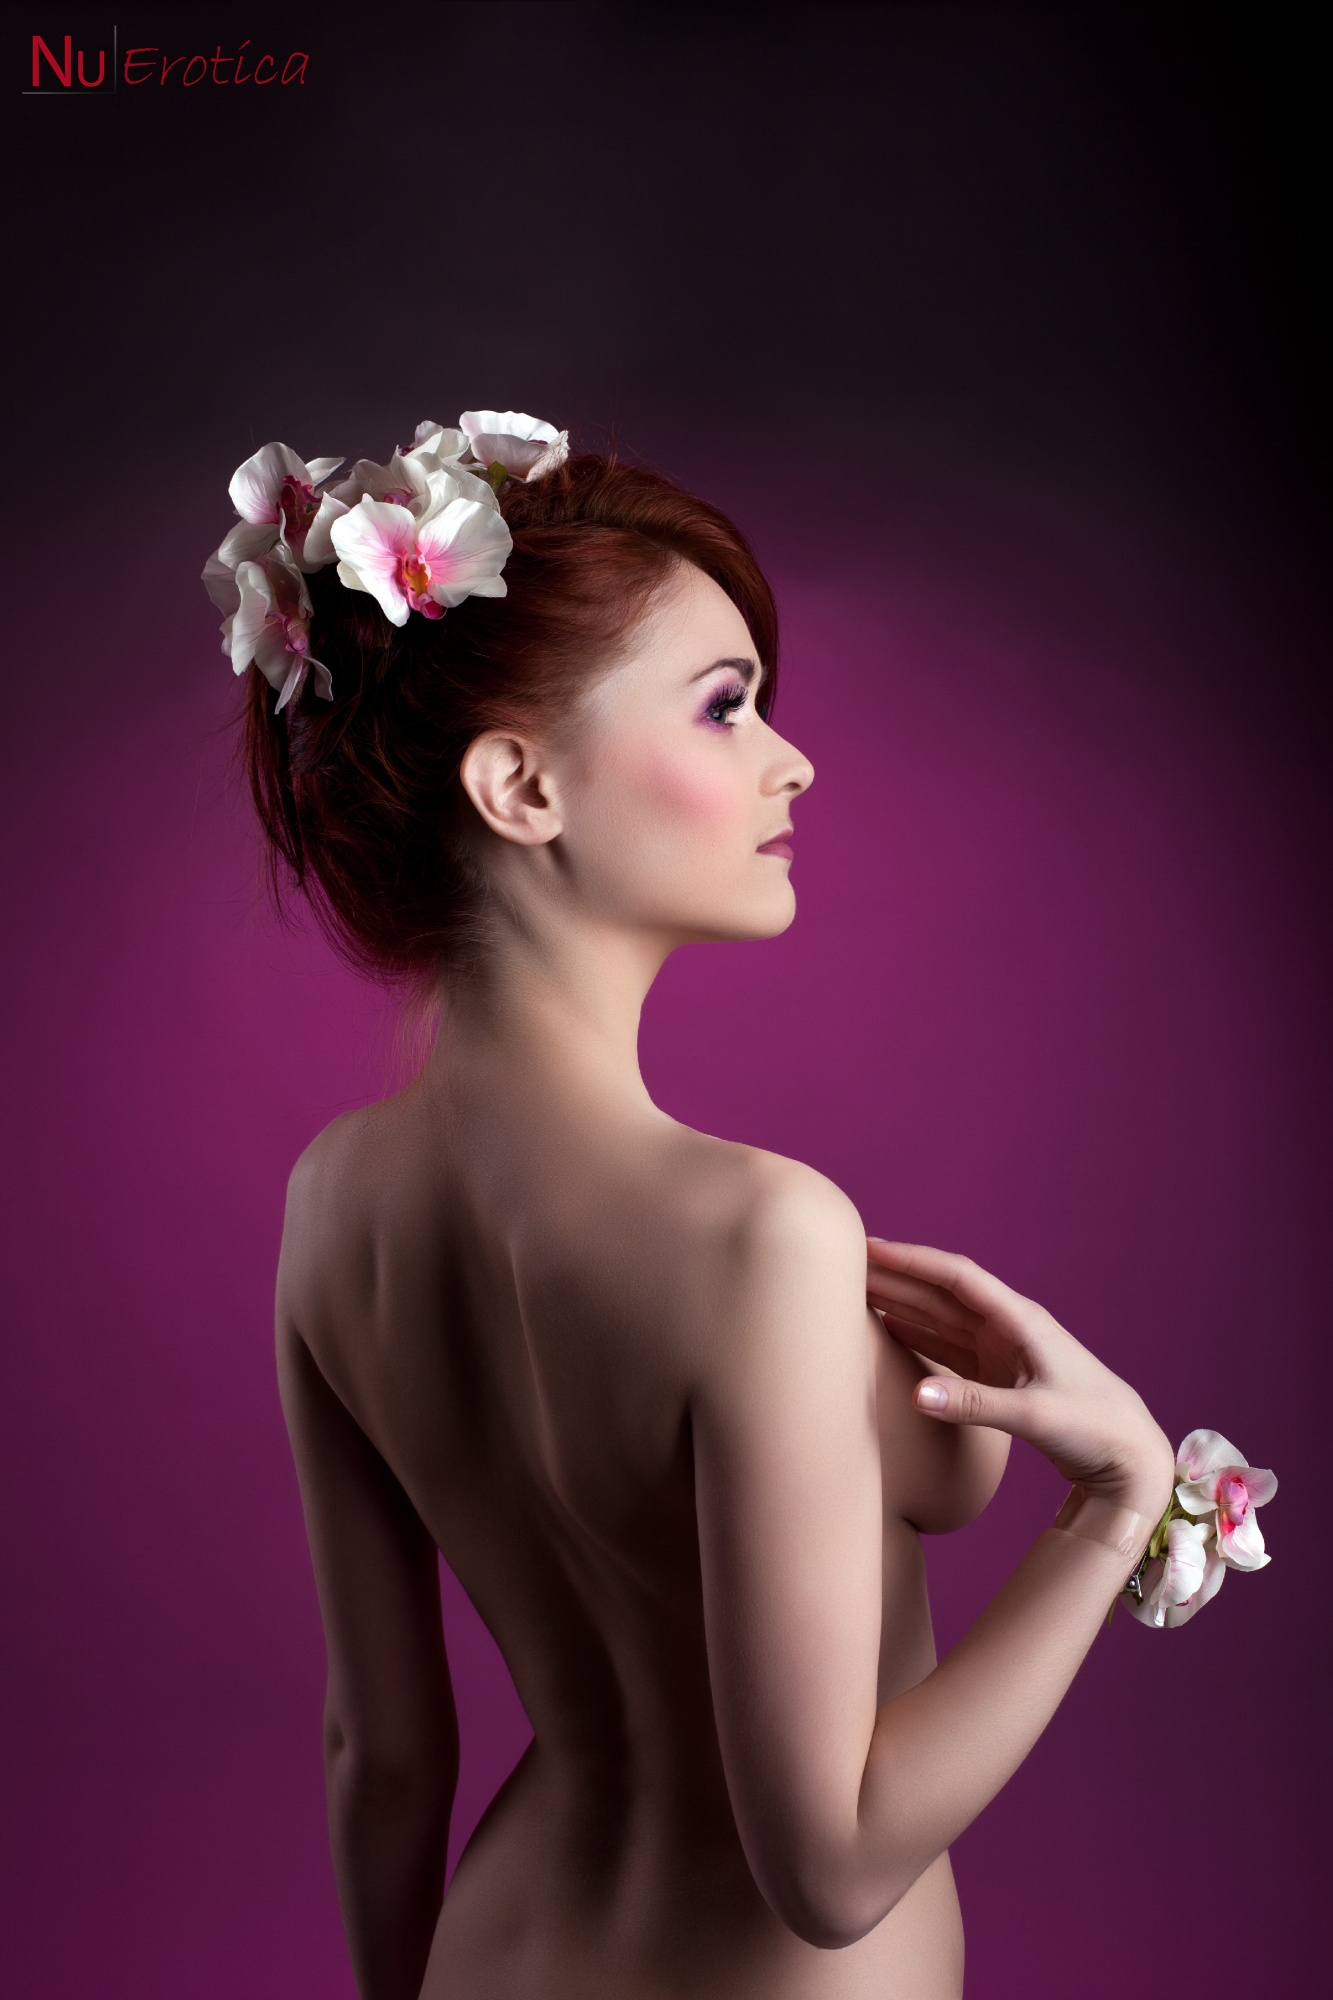 Redhead glamour models nude have hit